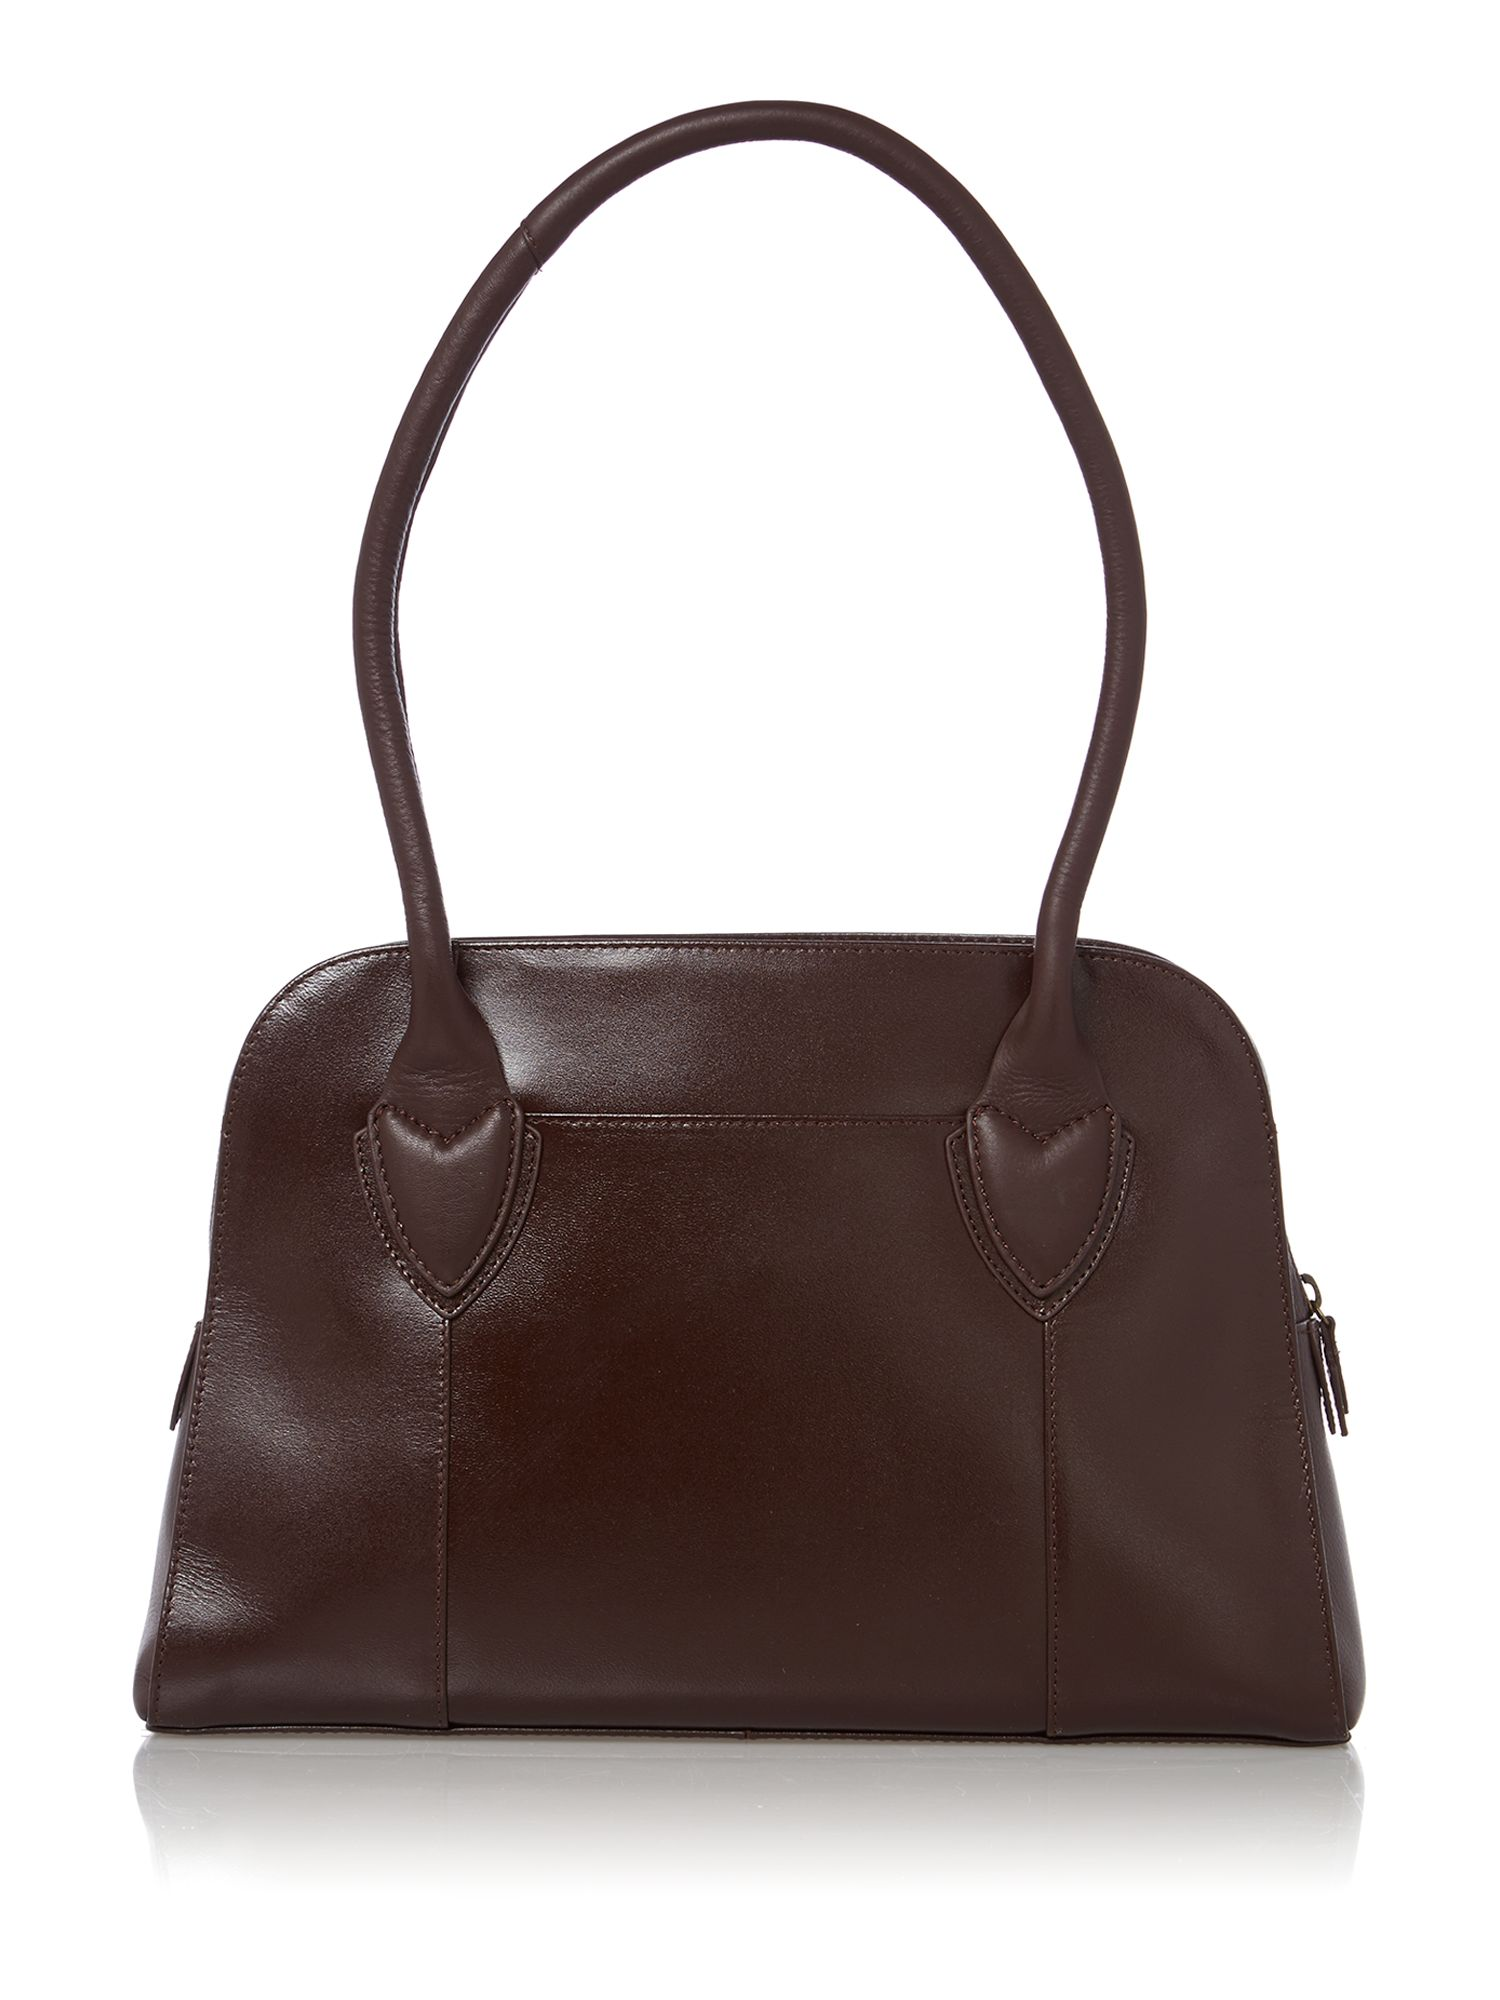 Aldgate purple medium leather shoulder bag